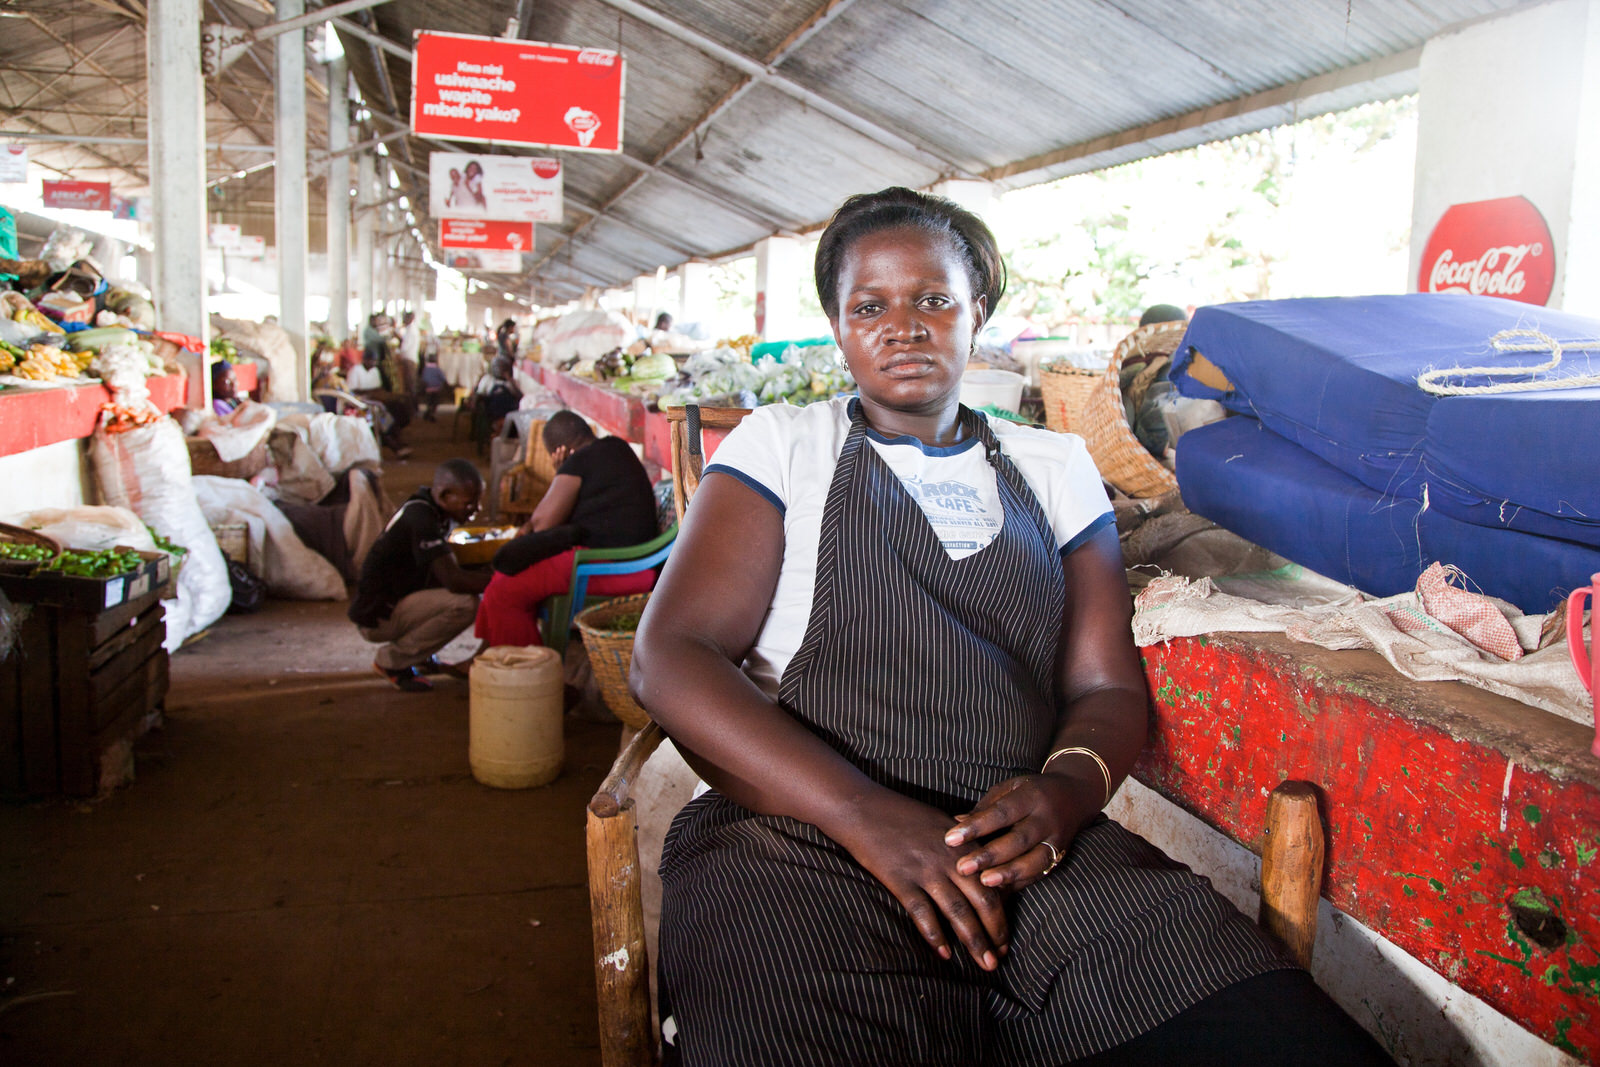 Florence Auma Othuon  is a widow living with her three children. She became a trader when her mother got sick and had to help her in the market. Her aspirations are for her children to get good jobs, such as being a doctor.